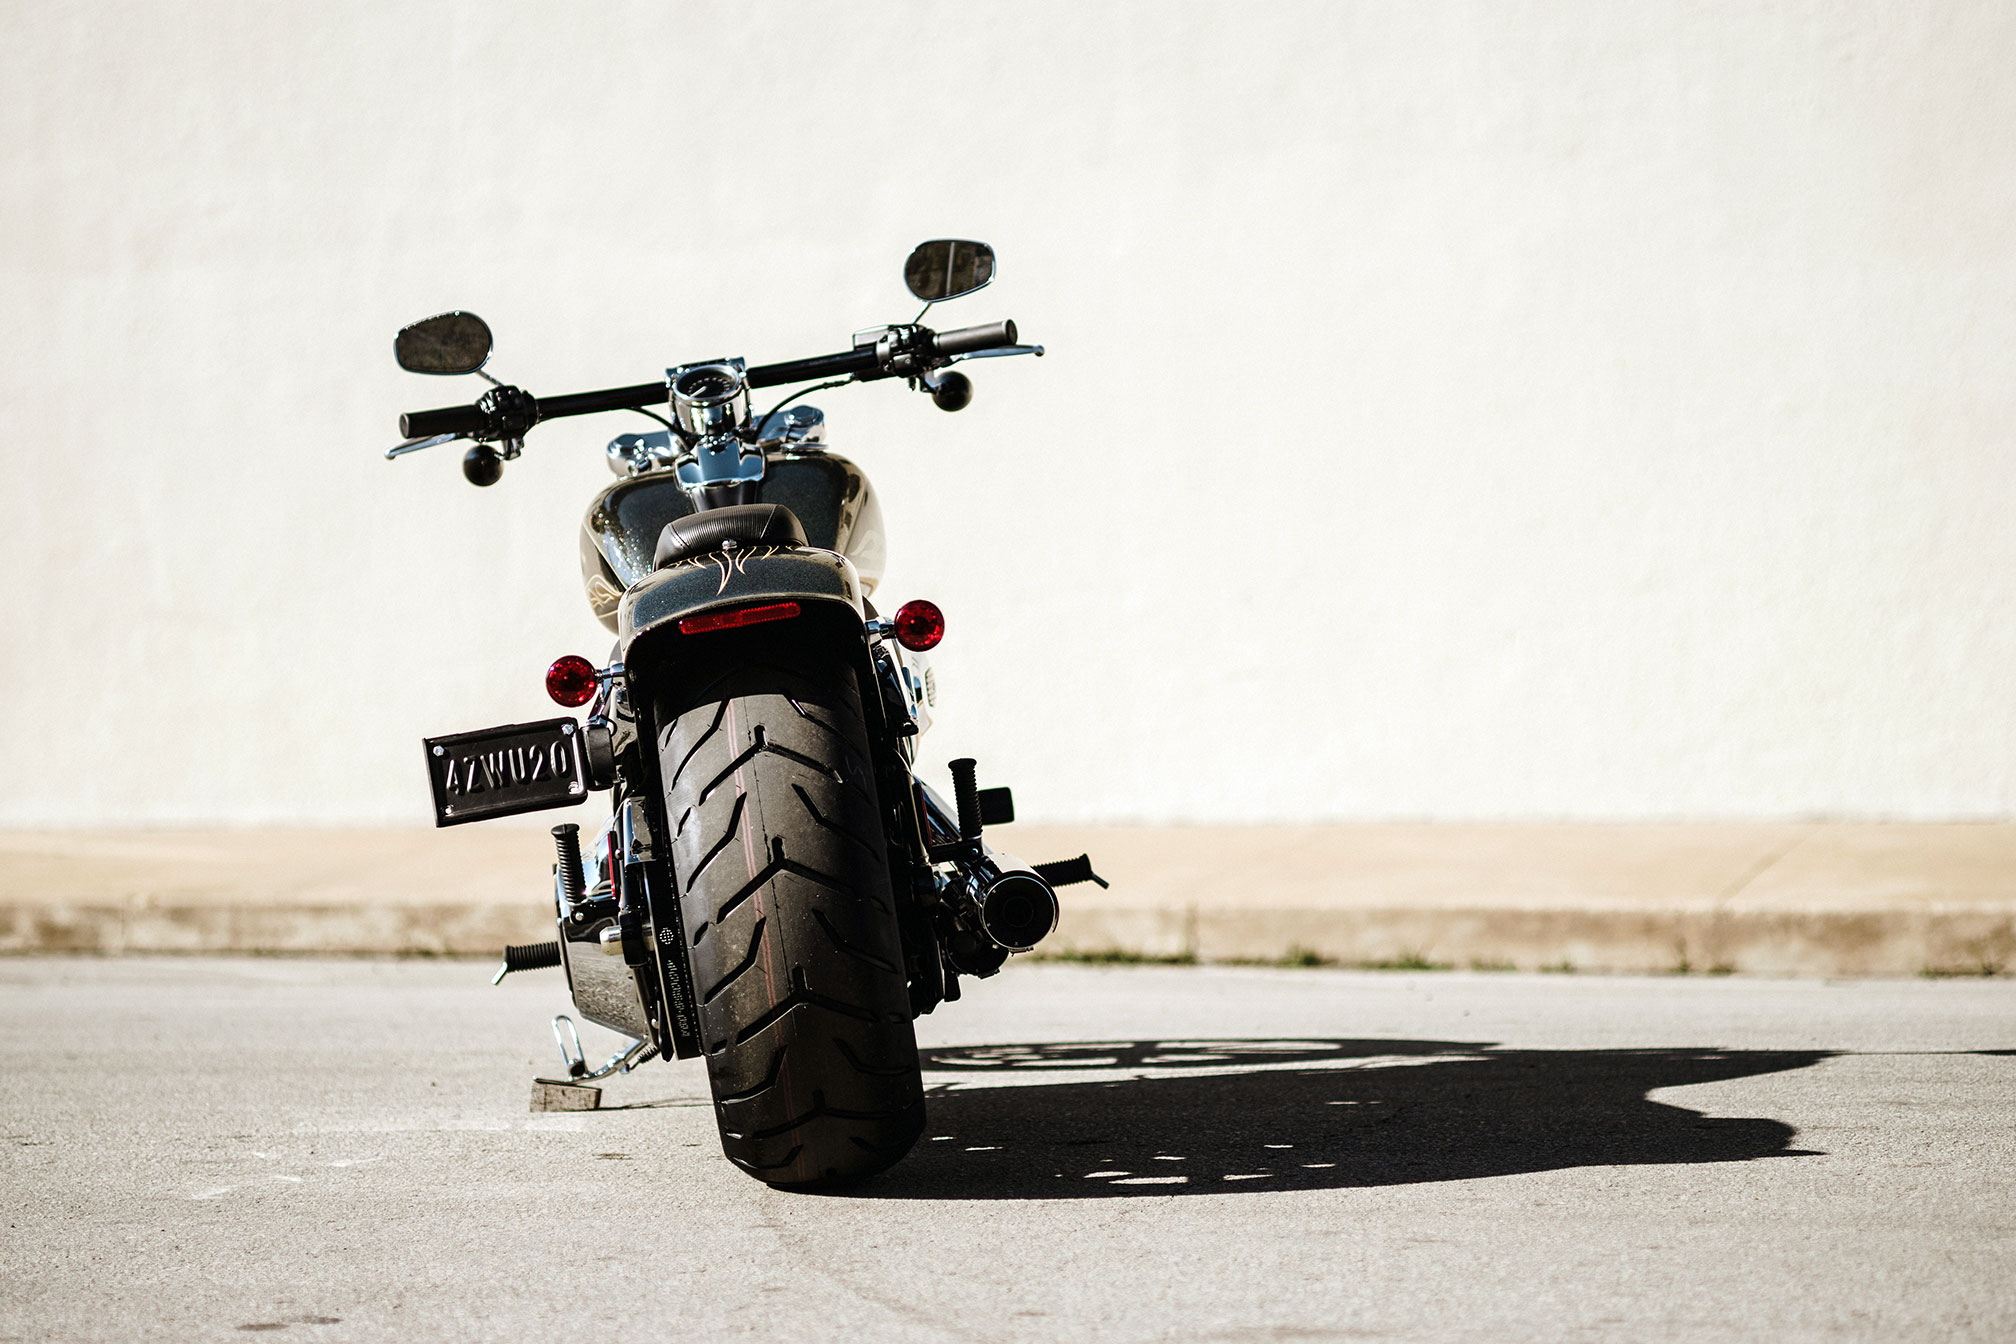 2016 harley davidson softail breakout review 2016 harley davidson softail breakout nvjuhfo Images